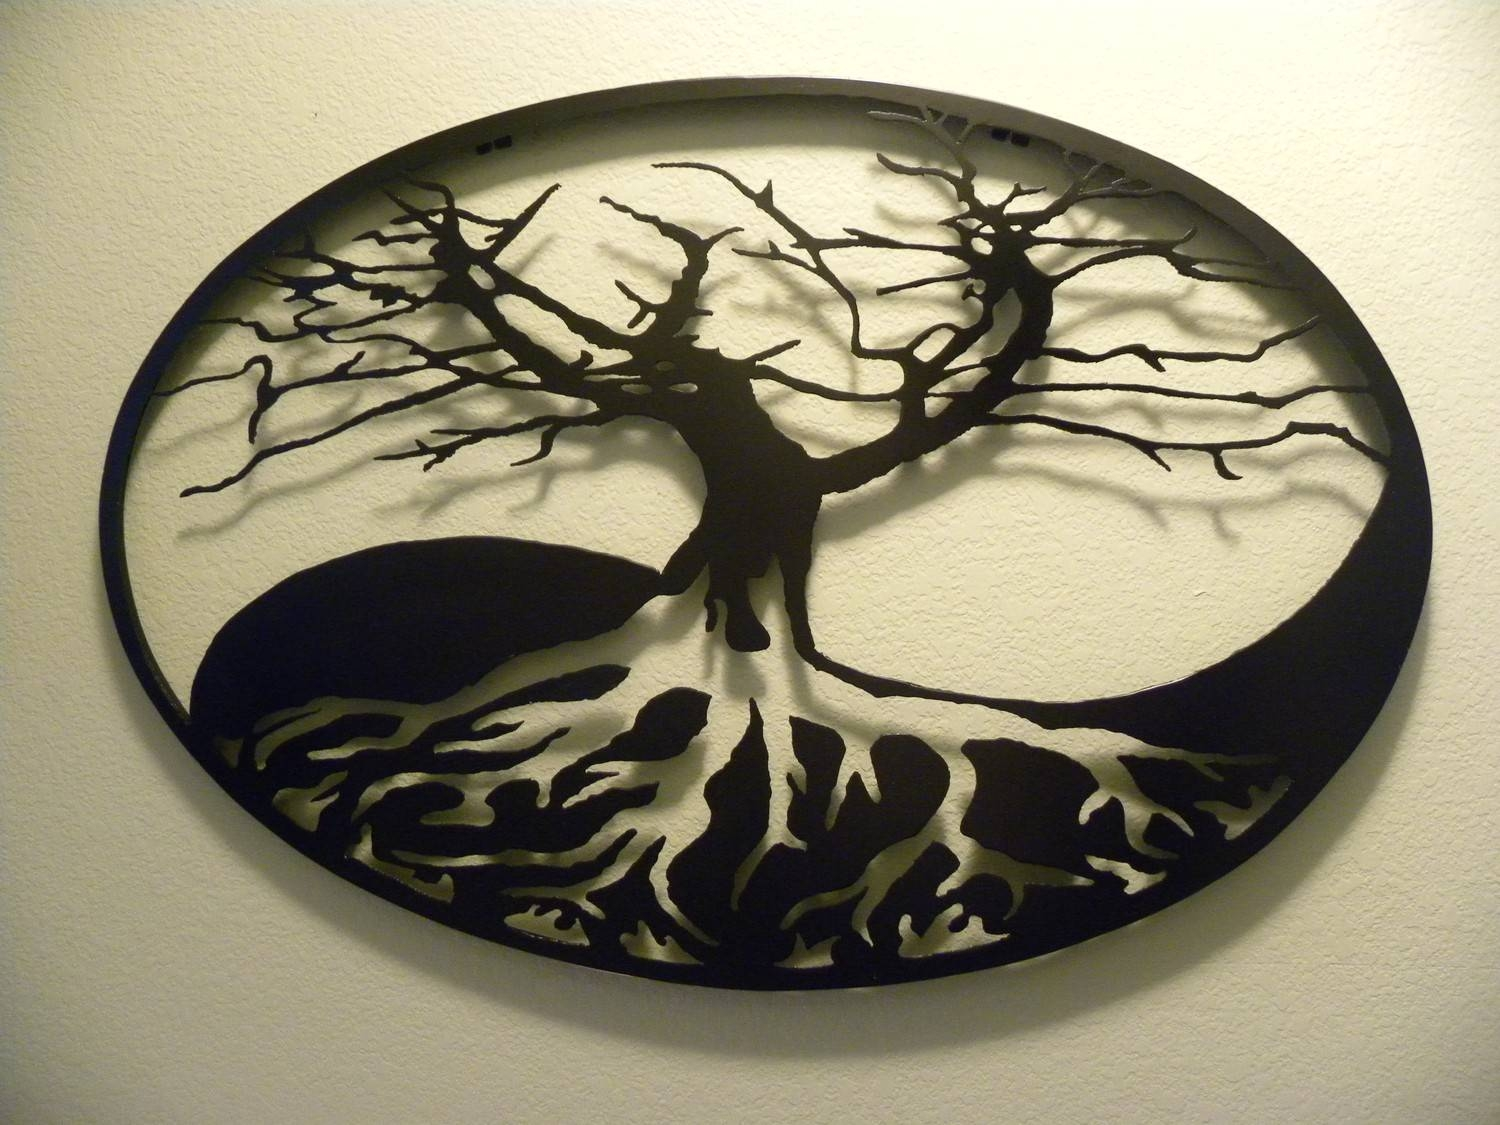 Oval Yin Yang Tree Of Life Metal Wall Art Intended For Most Popular Tree Of Life Metal Wall Art (View 10 of 20)